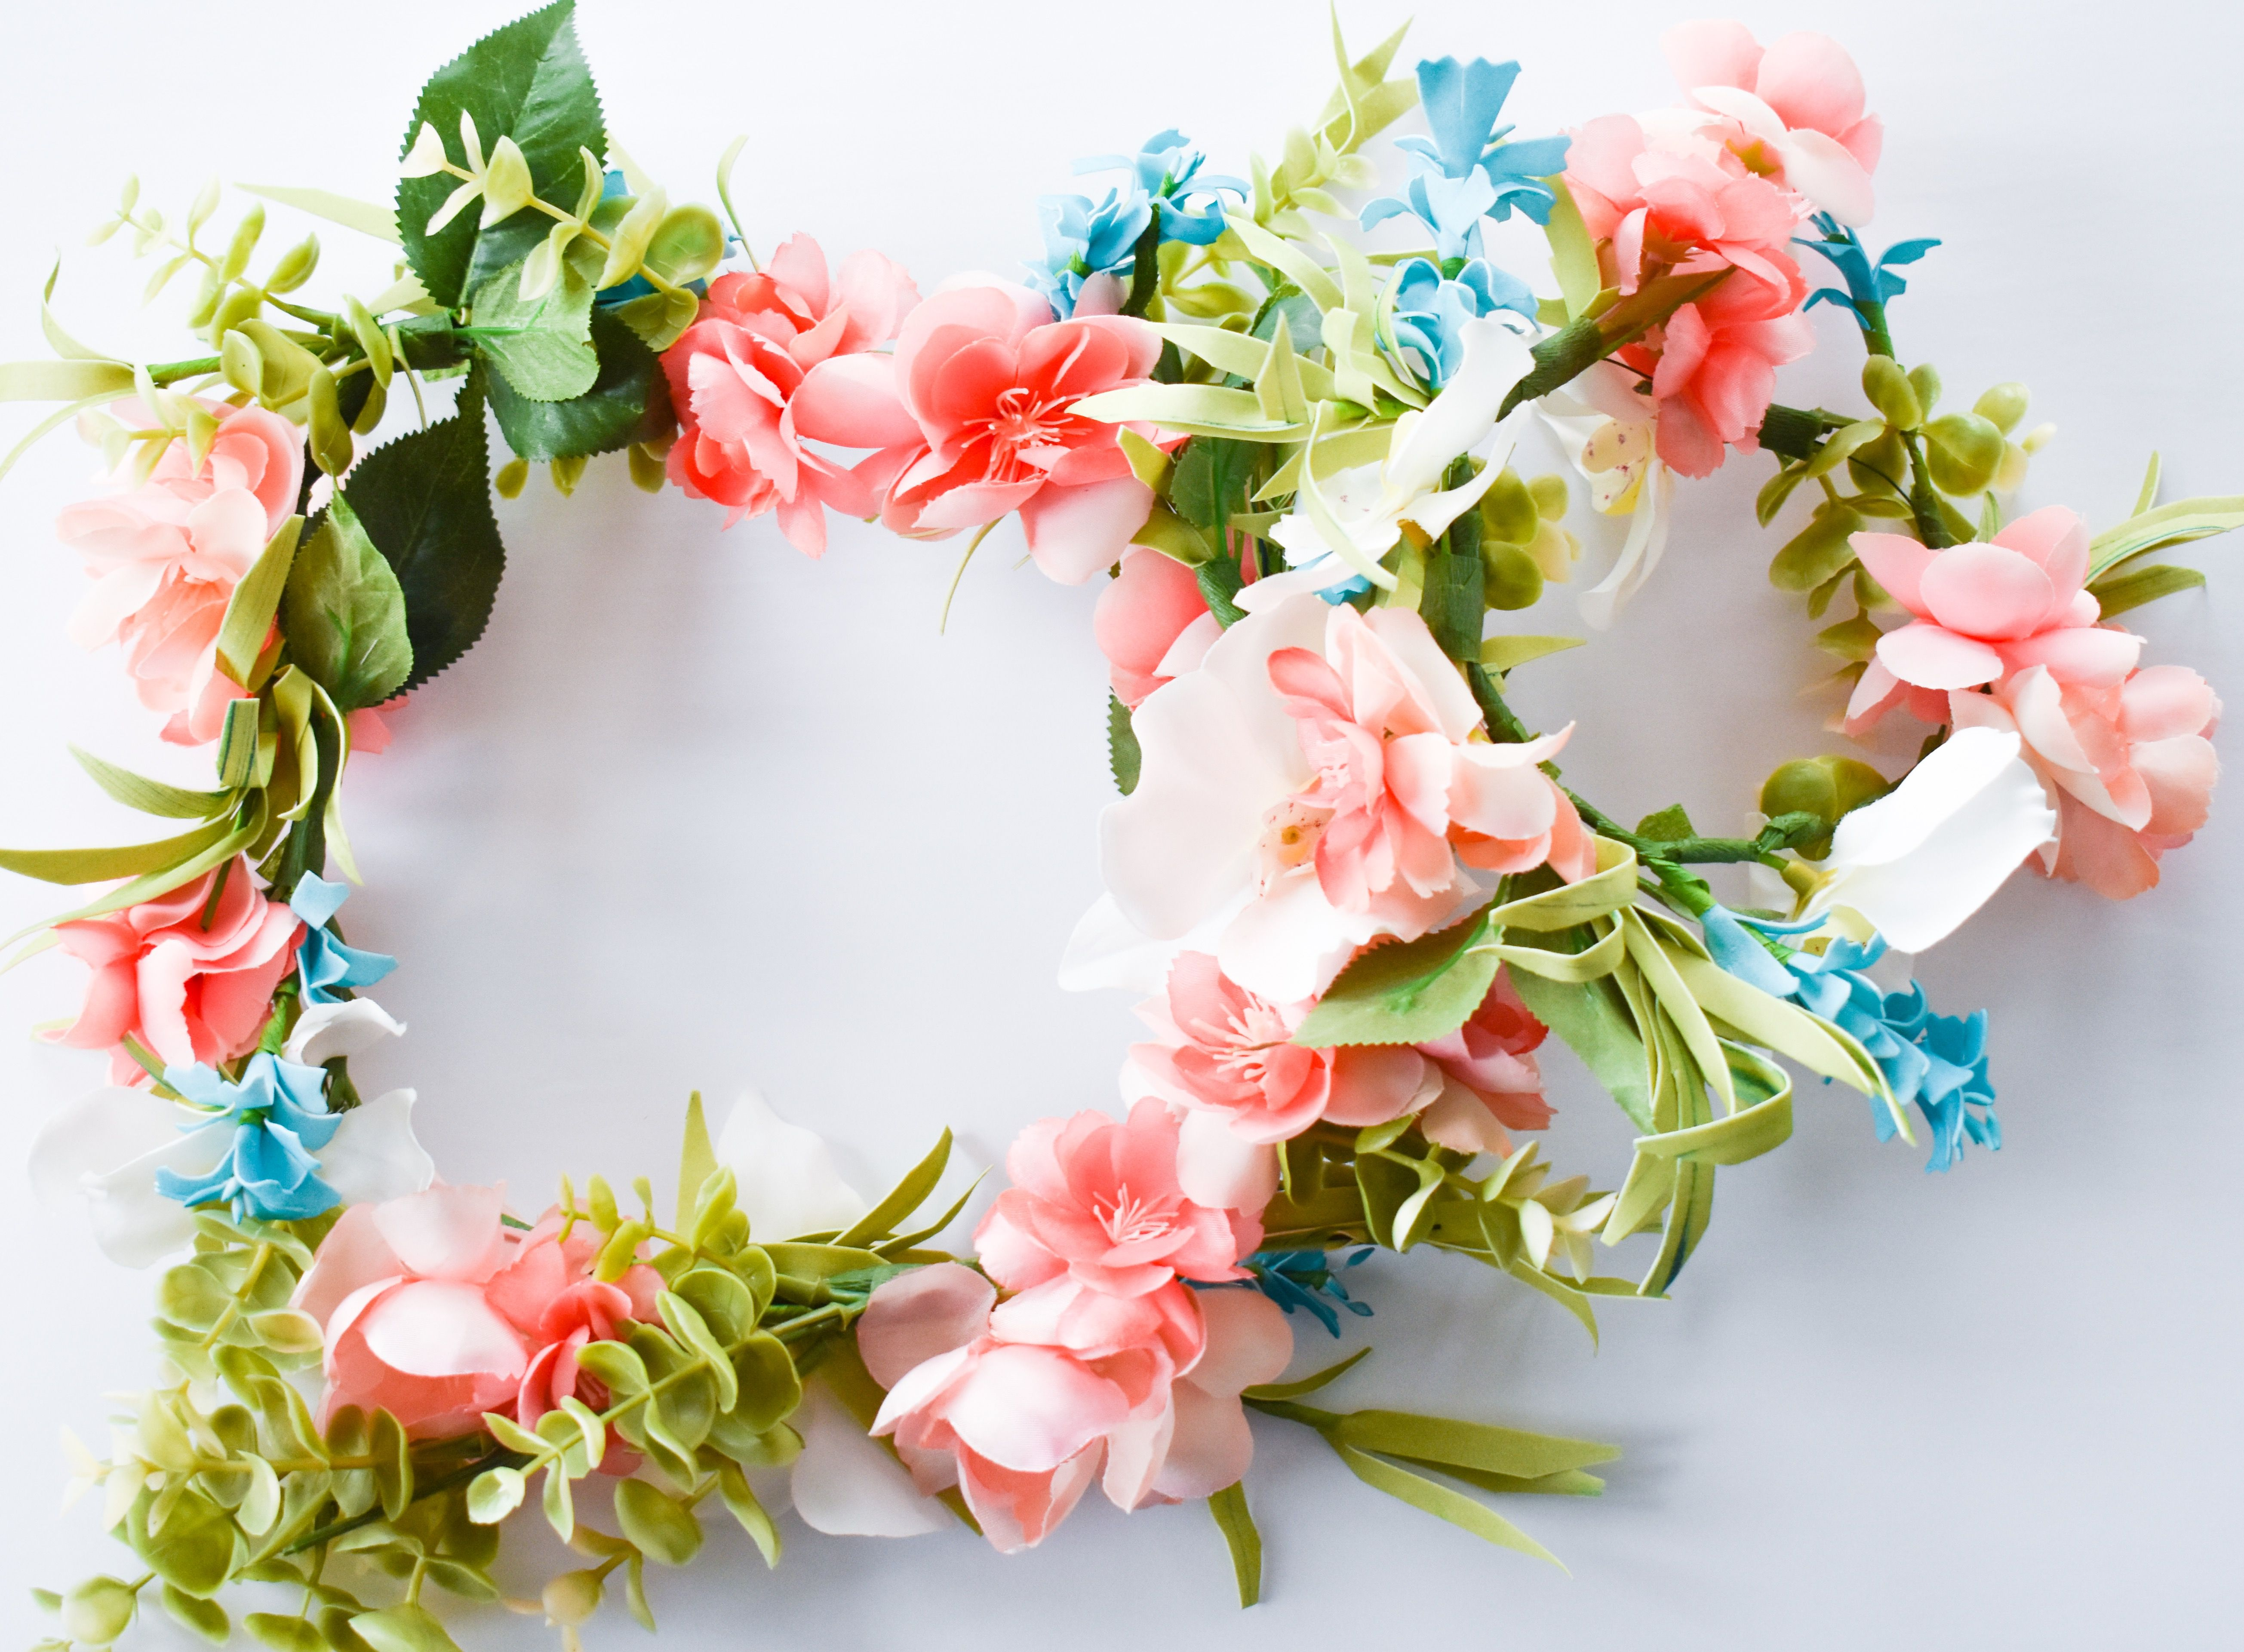 How To Make A Flower Crown With Fake Flowers Easy Diy Tutorial In